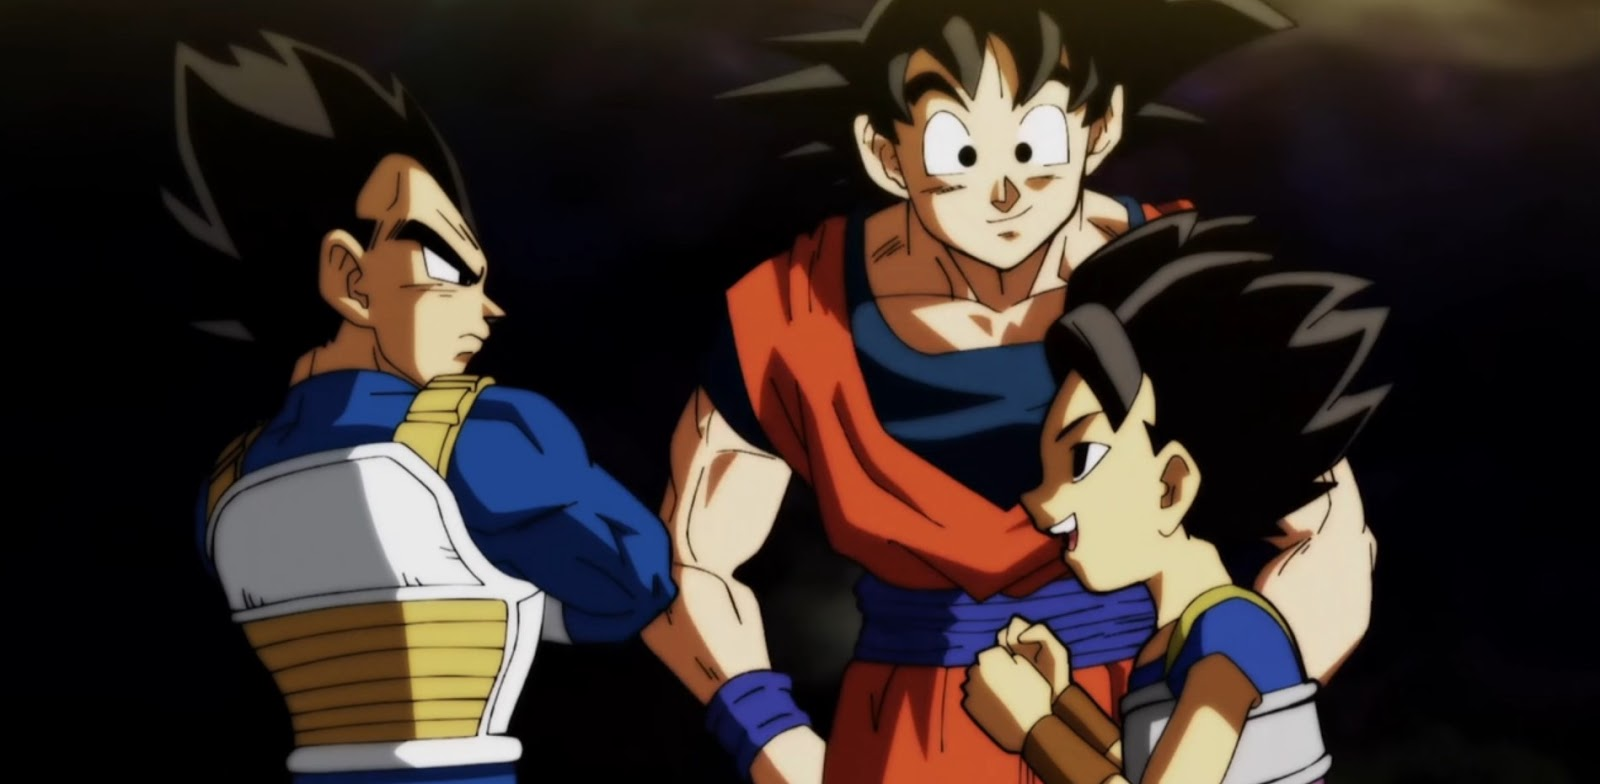 Dragon Ball Super - Episódio 96, Assistir Dragon Ball Super Episodio 96, Download Dragon Ball Super 96 HD, 720P Assistir Dragon Ball Super 96, DBS96, Baixa.